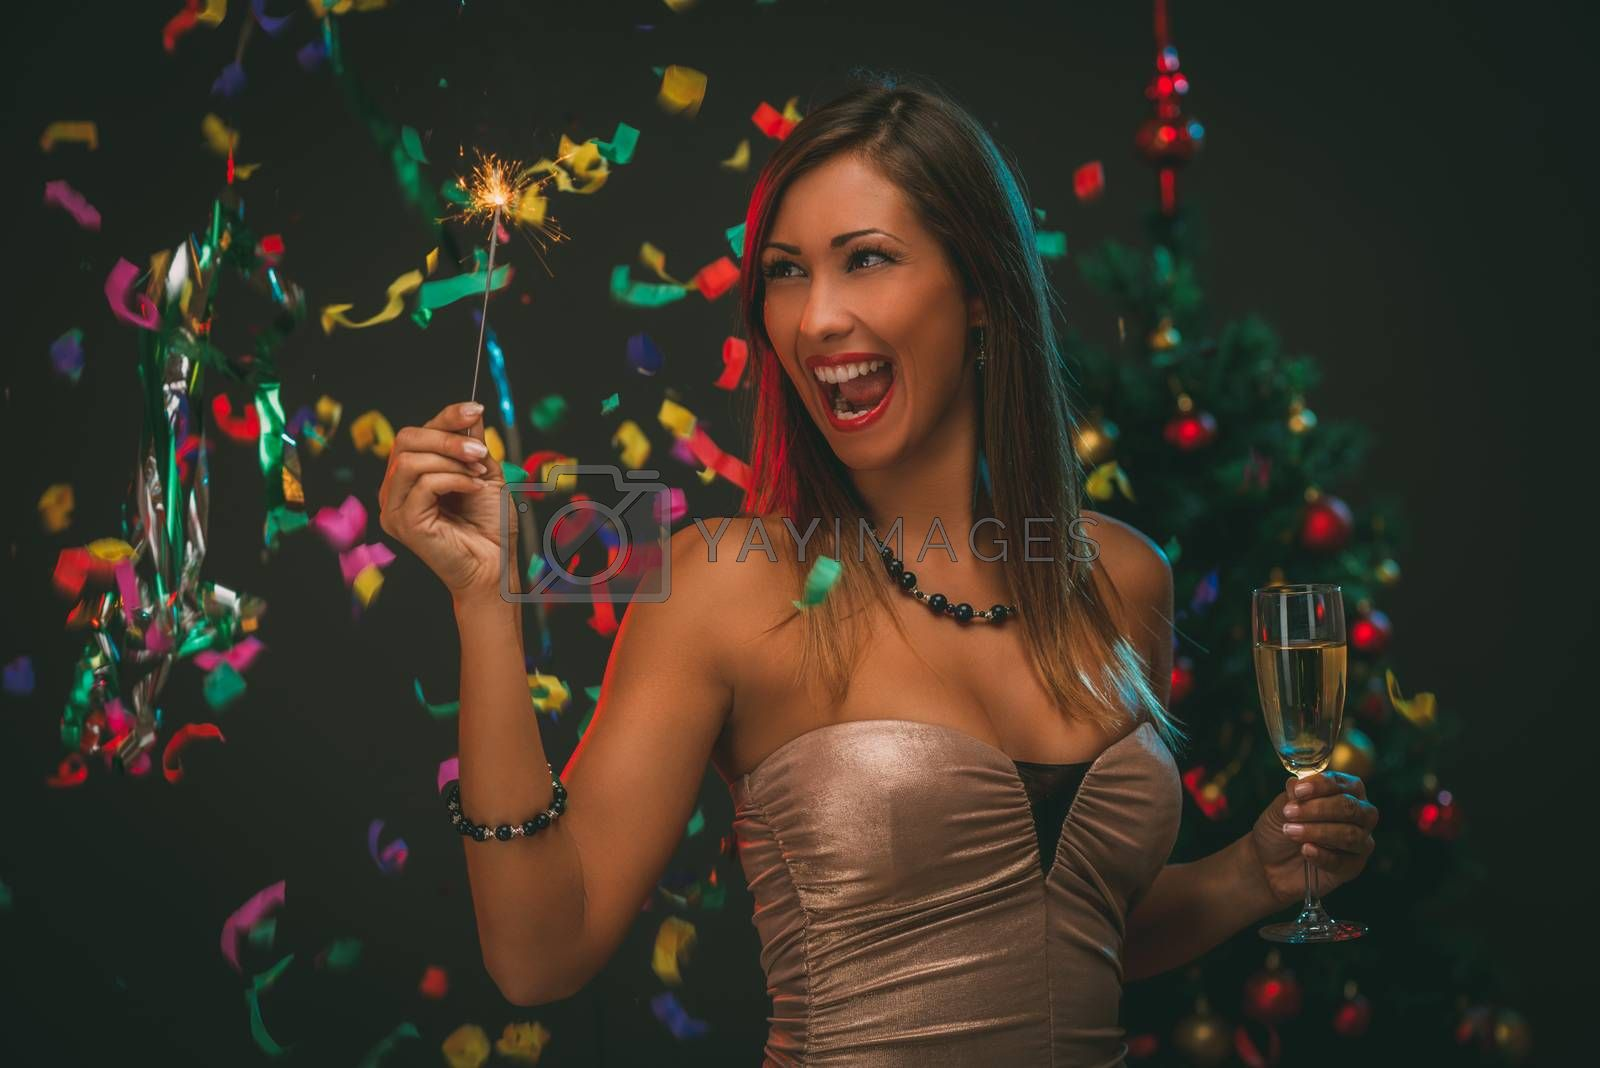 Cheerful beautiful woman celebrating New Year. She is having fun with sparkler and champagne.